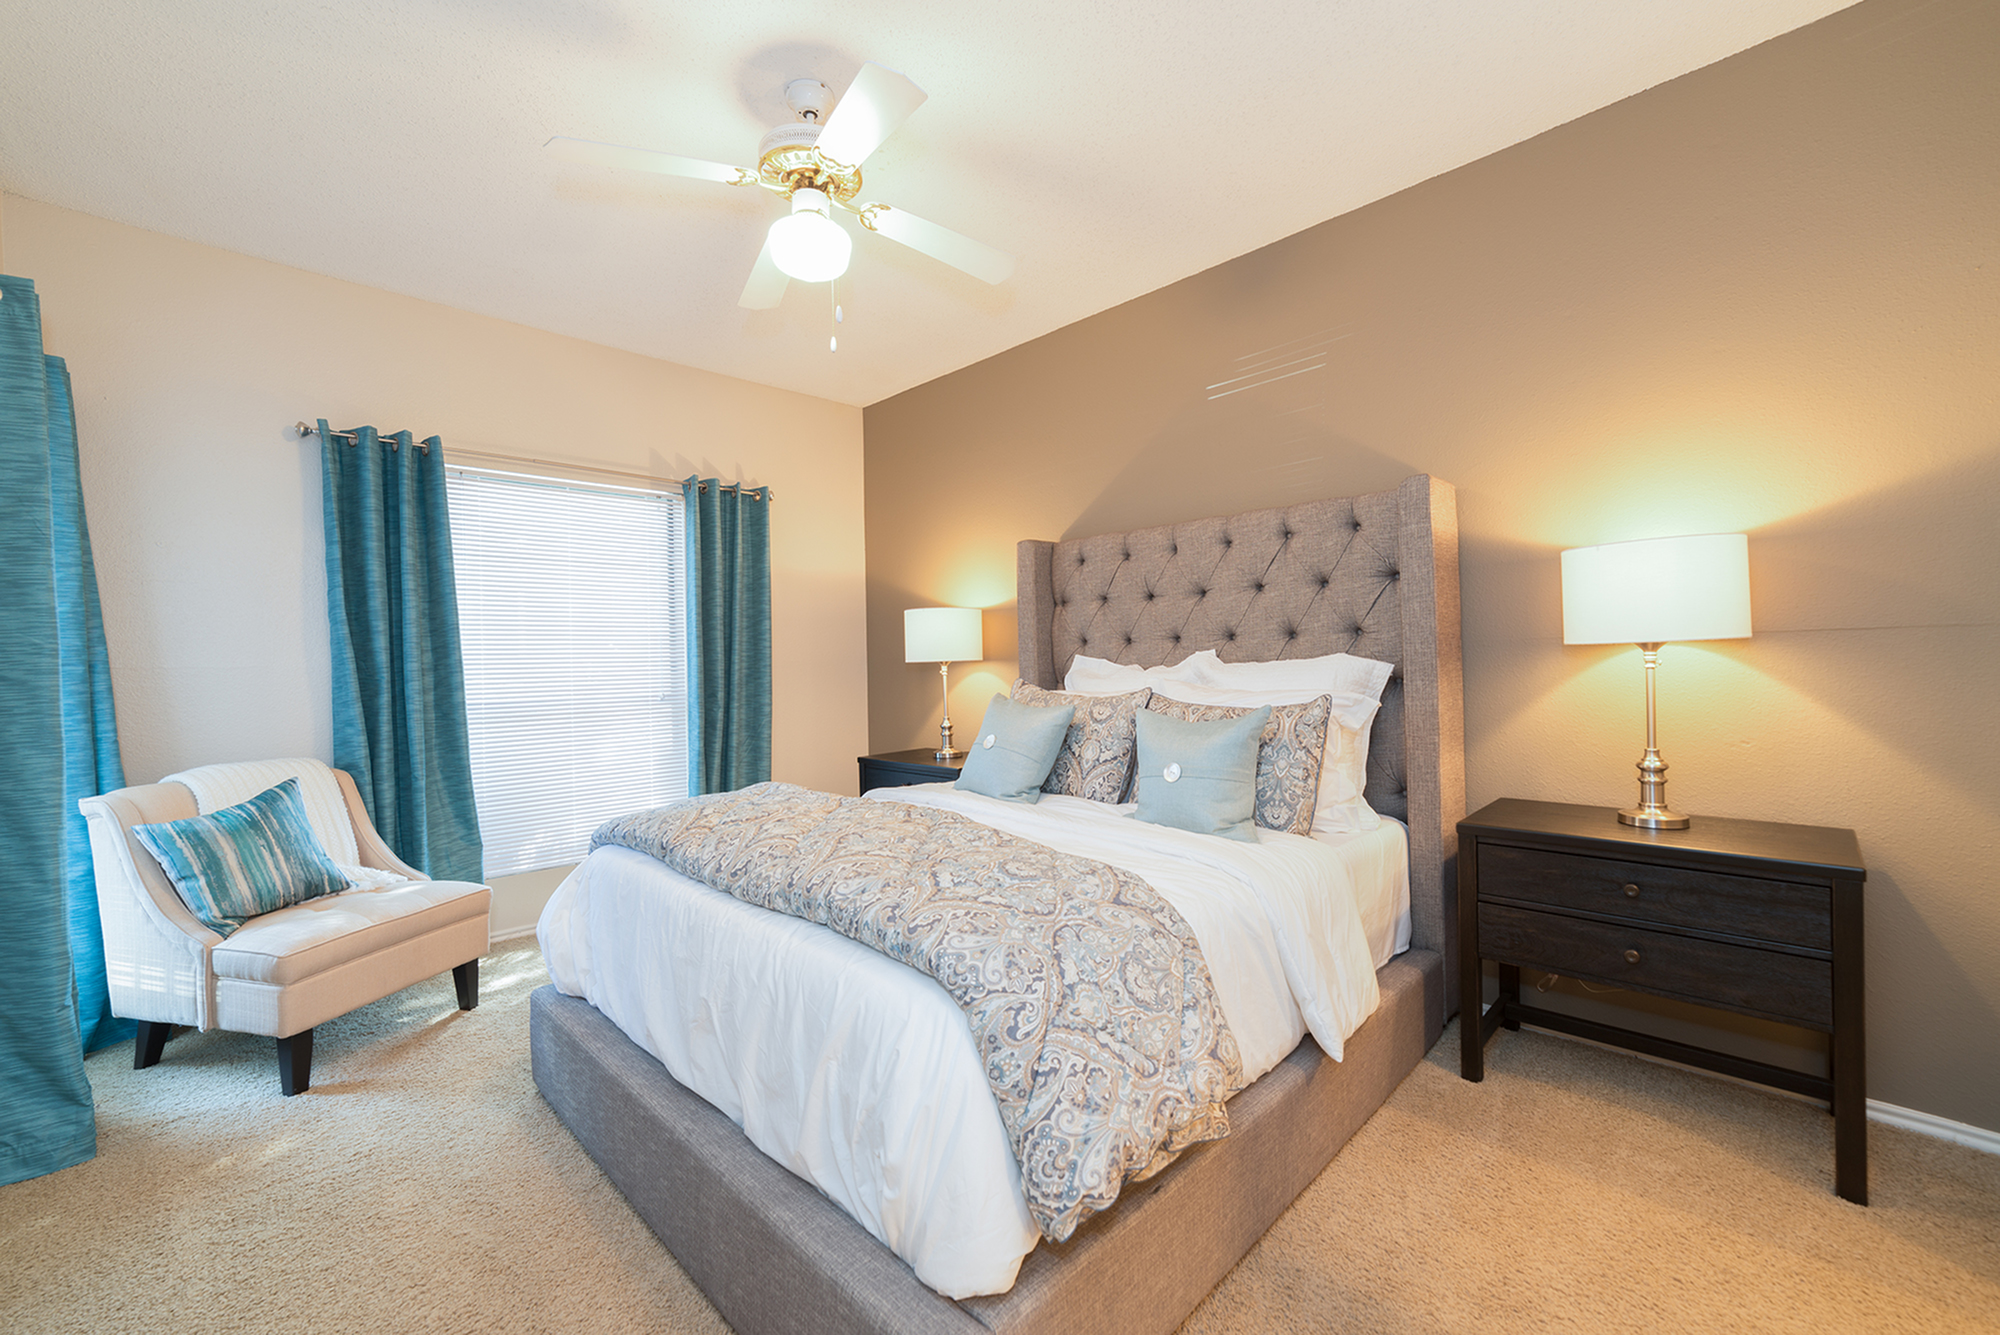 Bedroom with carpeting and ceiling fan | 1 bedroom apartment Canyon Creek in Austin TX